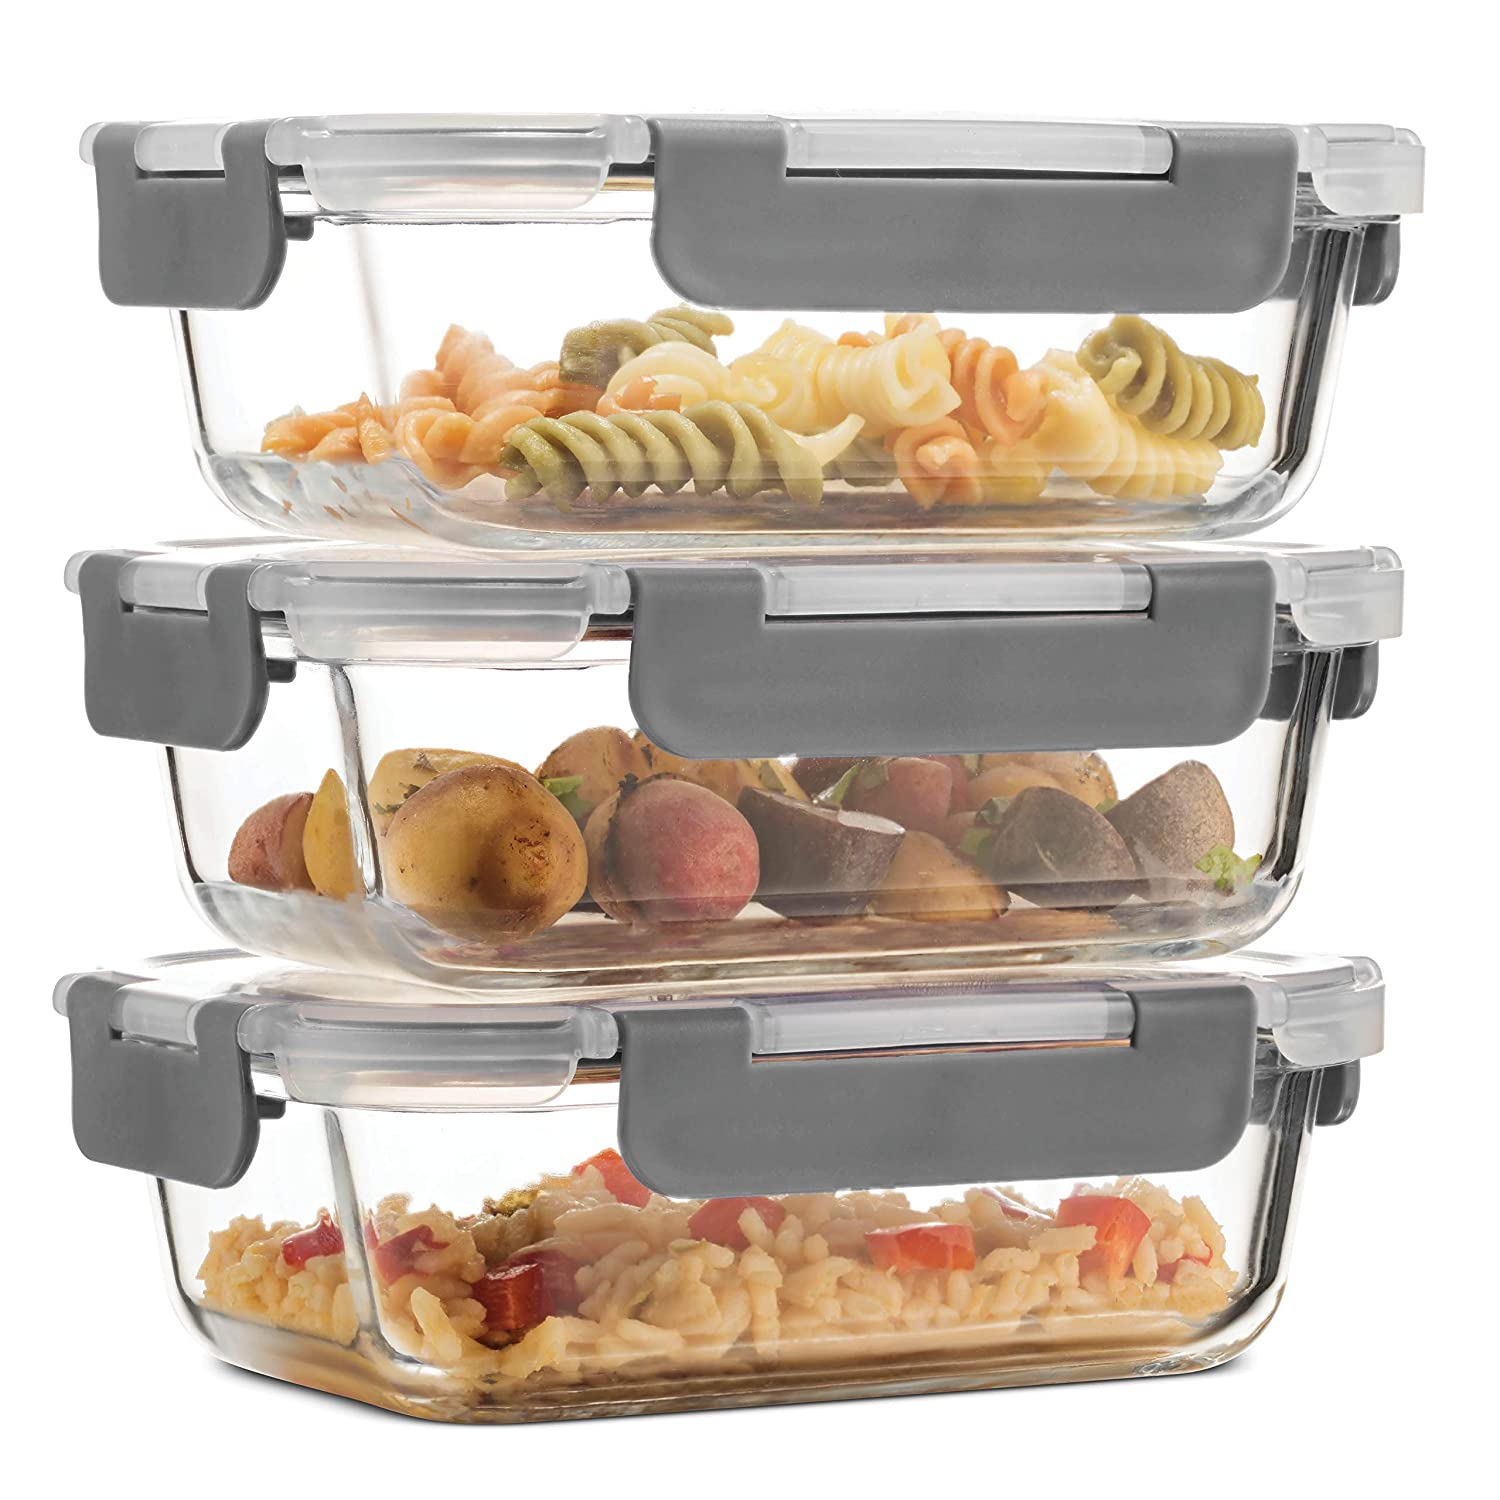 Superior Glass Meal Prep Containers - 3-pack (21oz) Newly Innovated Hinged BPA-free Locking lids - 100% Leak Proof Glass Food Storage Containers, Great on-the-go, Freezer to Oven Safe Lunch Containers